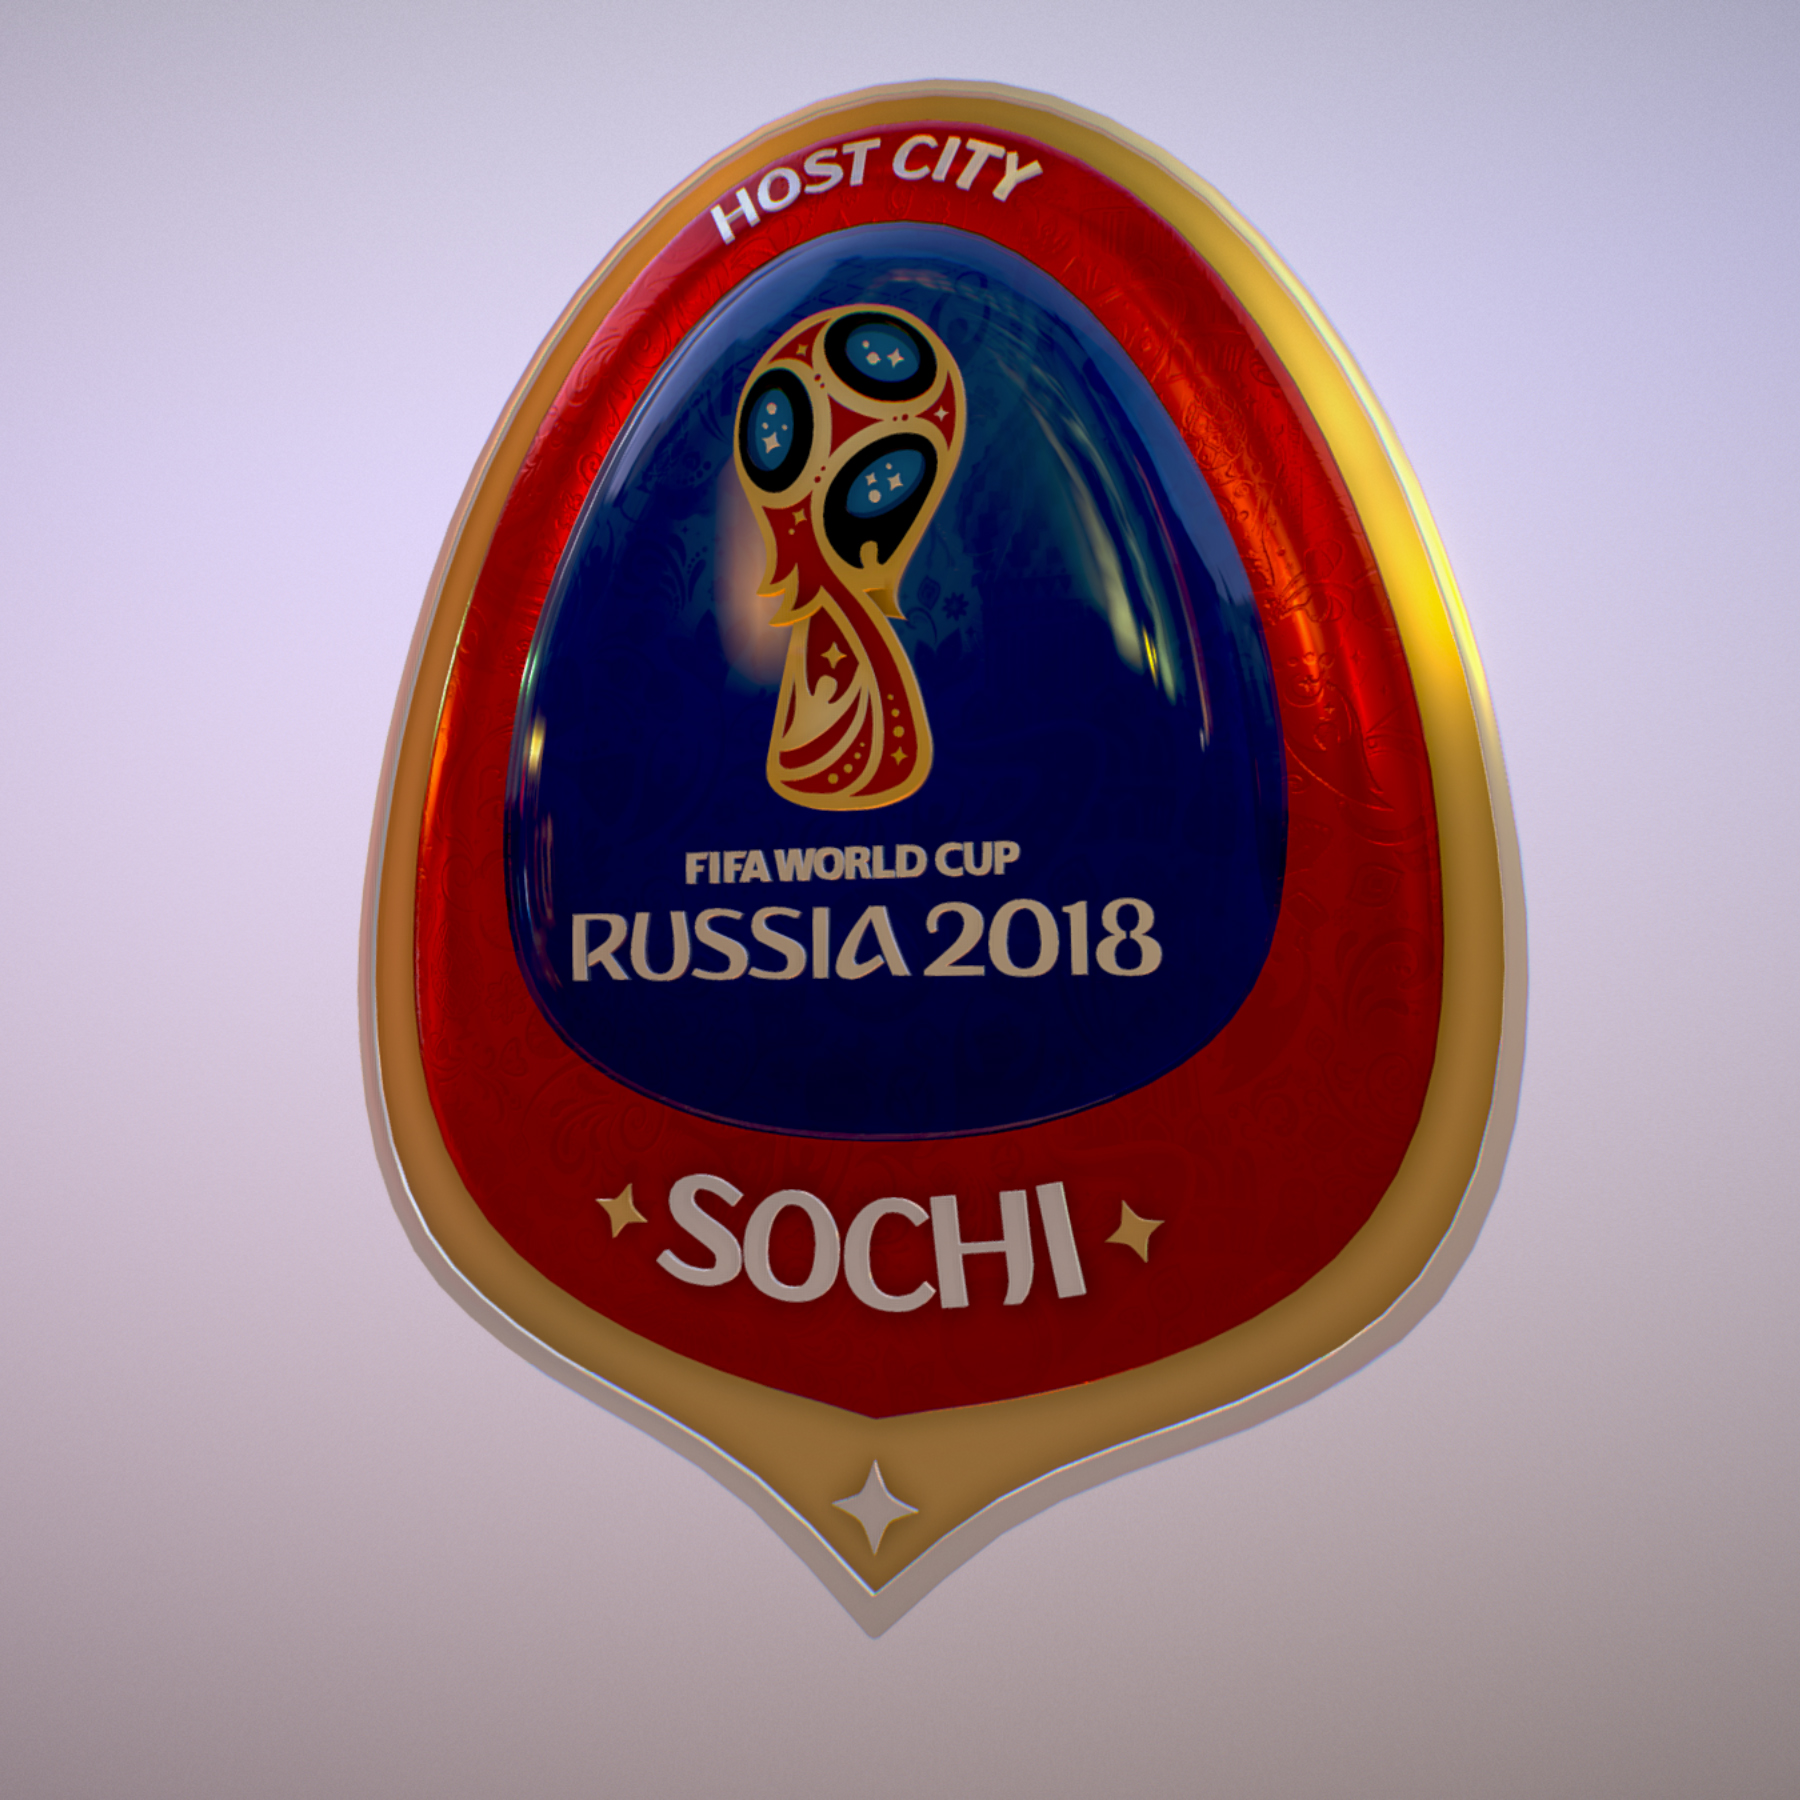 sochi host city world cup russia 2018 symbol 3d model max  fbx ma mb obj 271711